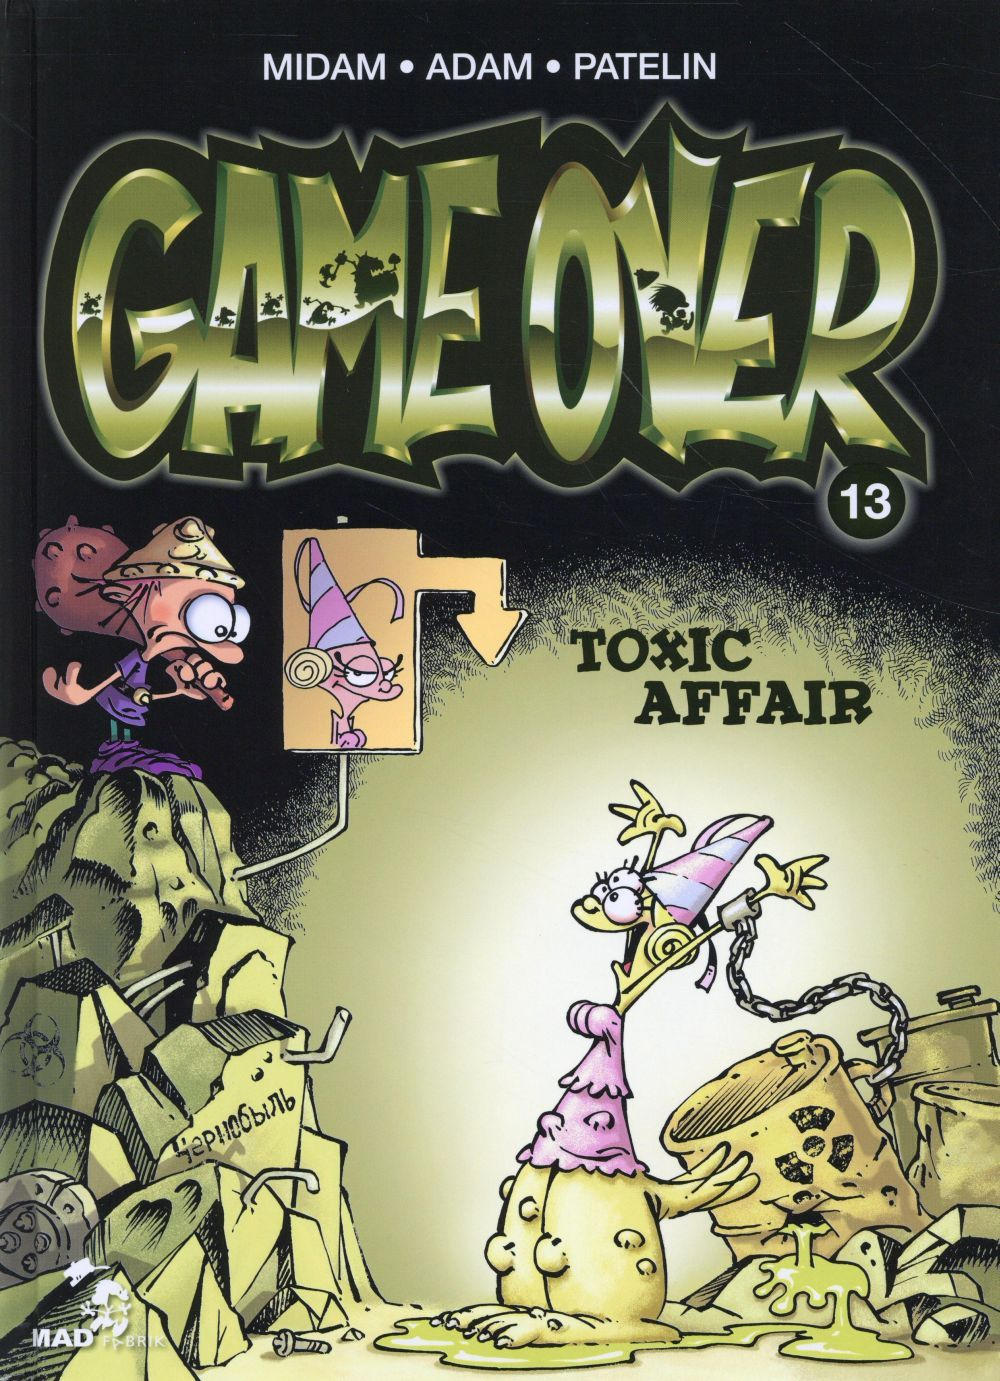 Couverture Game Over Tome 13 Kid Paddle Livre Et Planete Bd